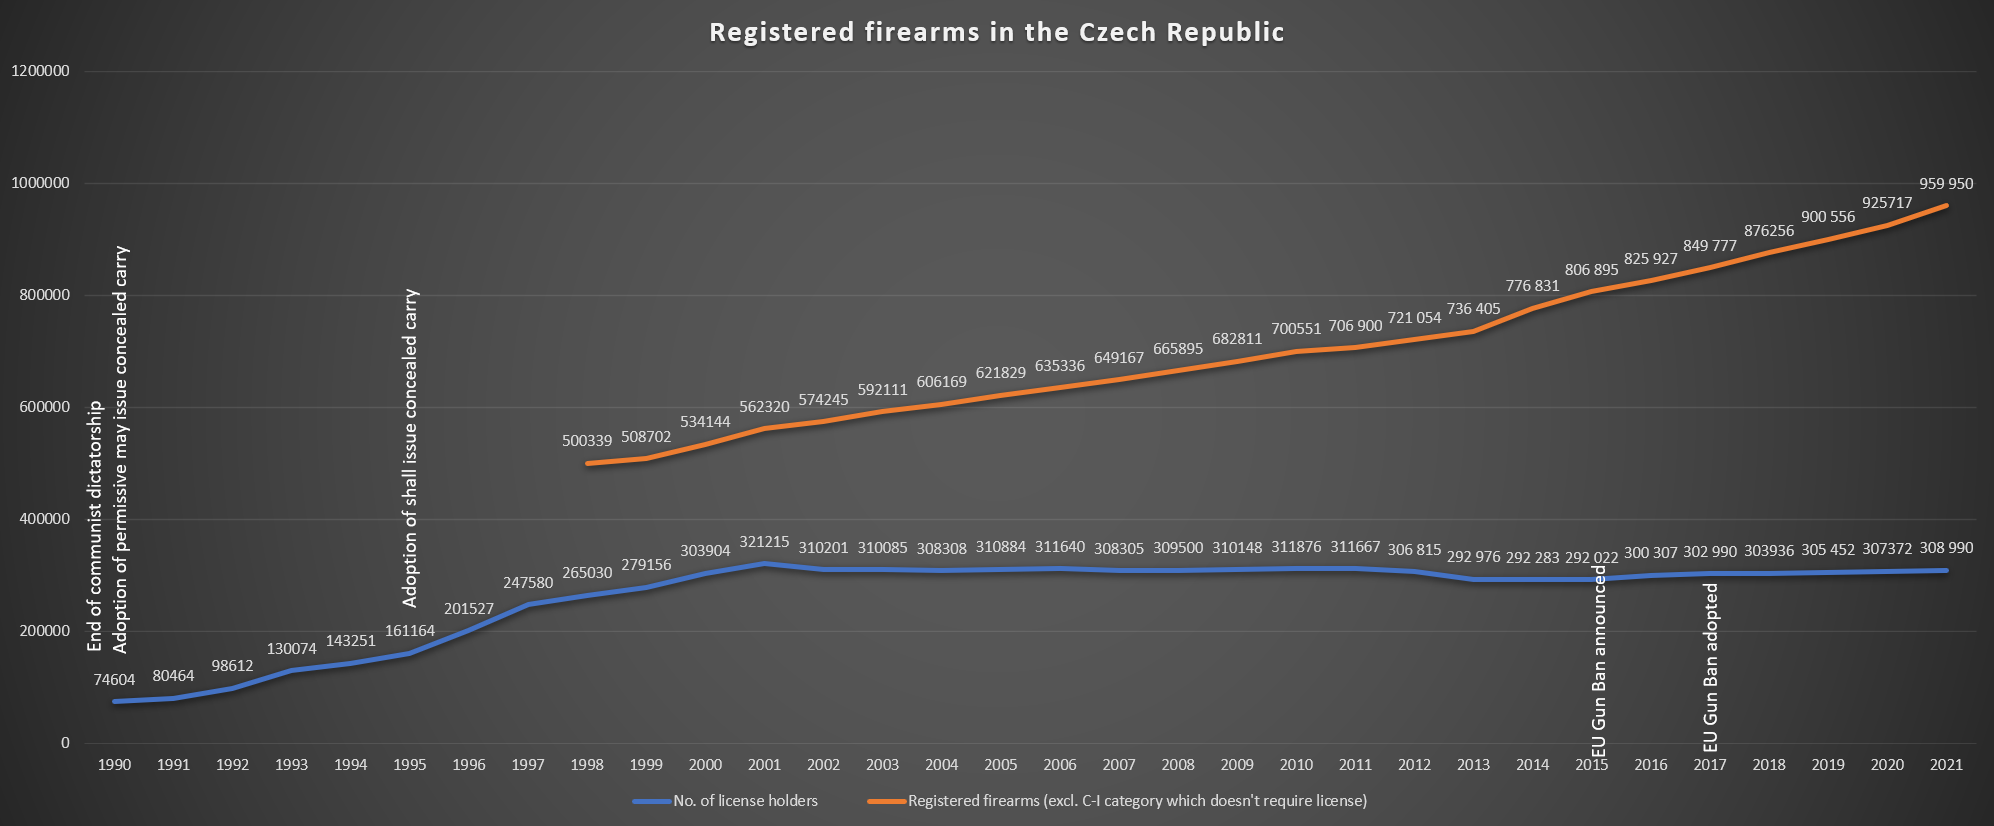 Guns_in_czech_rep.png